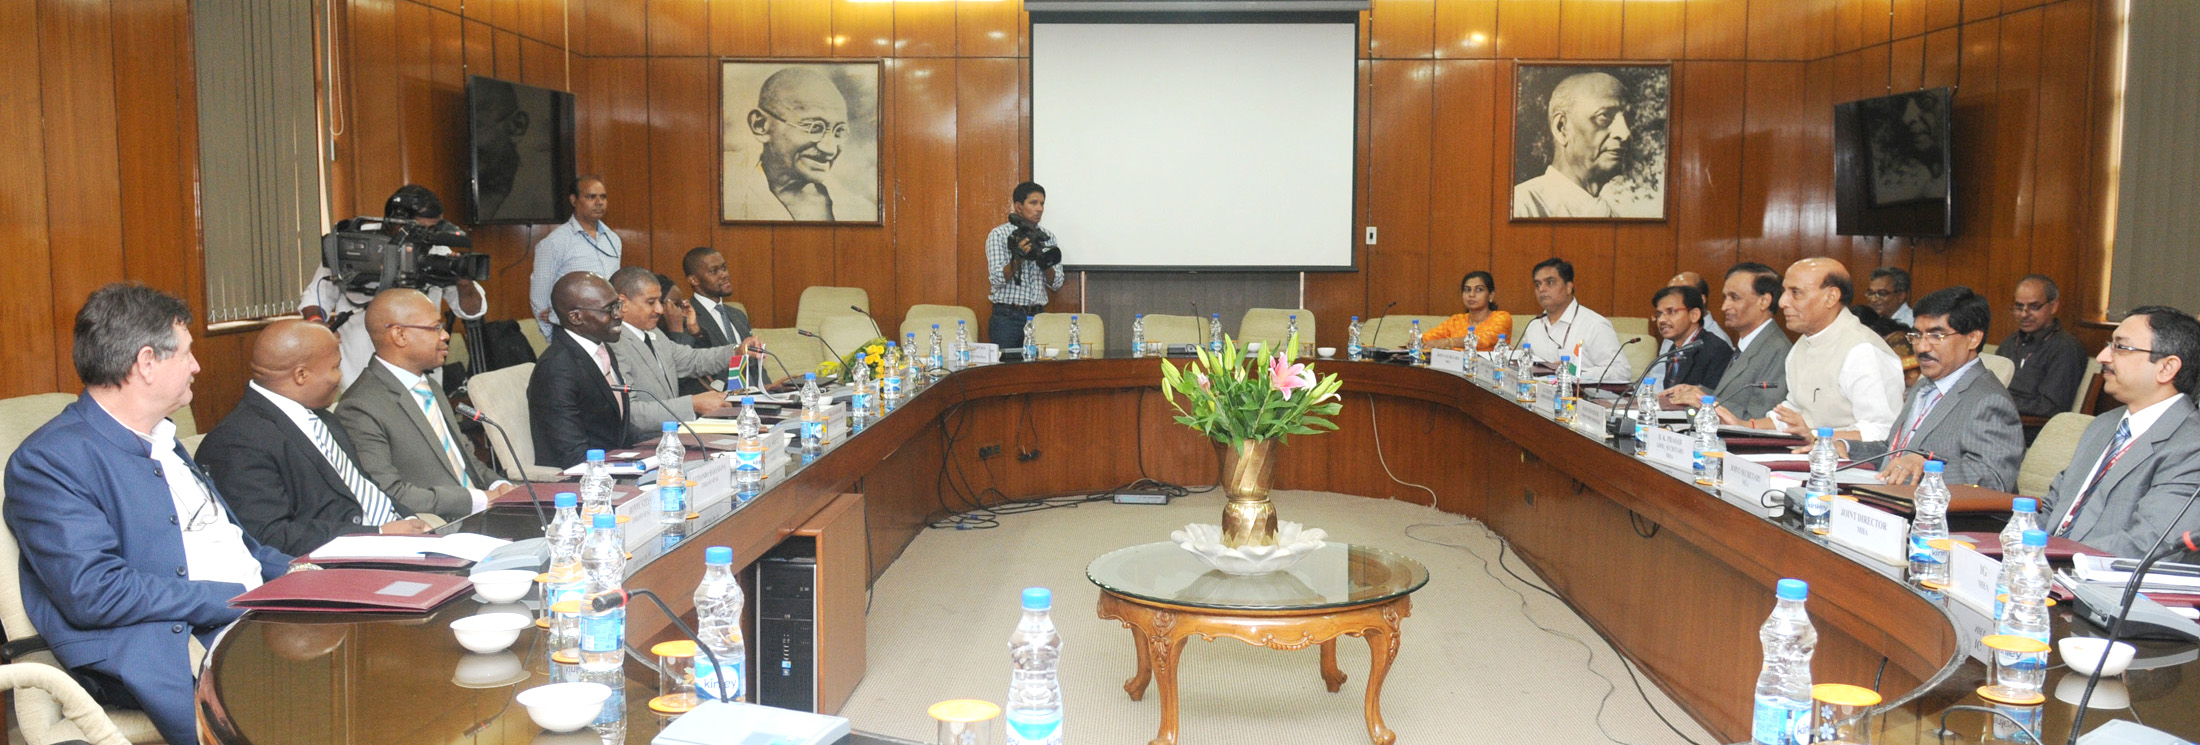 The Minister of Home Affairs of the Republic of South Africa, Mr. Malusi Gigaba with Delegation meeting with the Union Home Minister, Shri Rajnath Singh, in New Delhi on July 08, 2015.